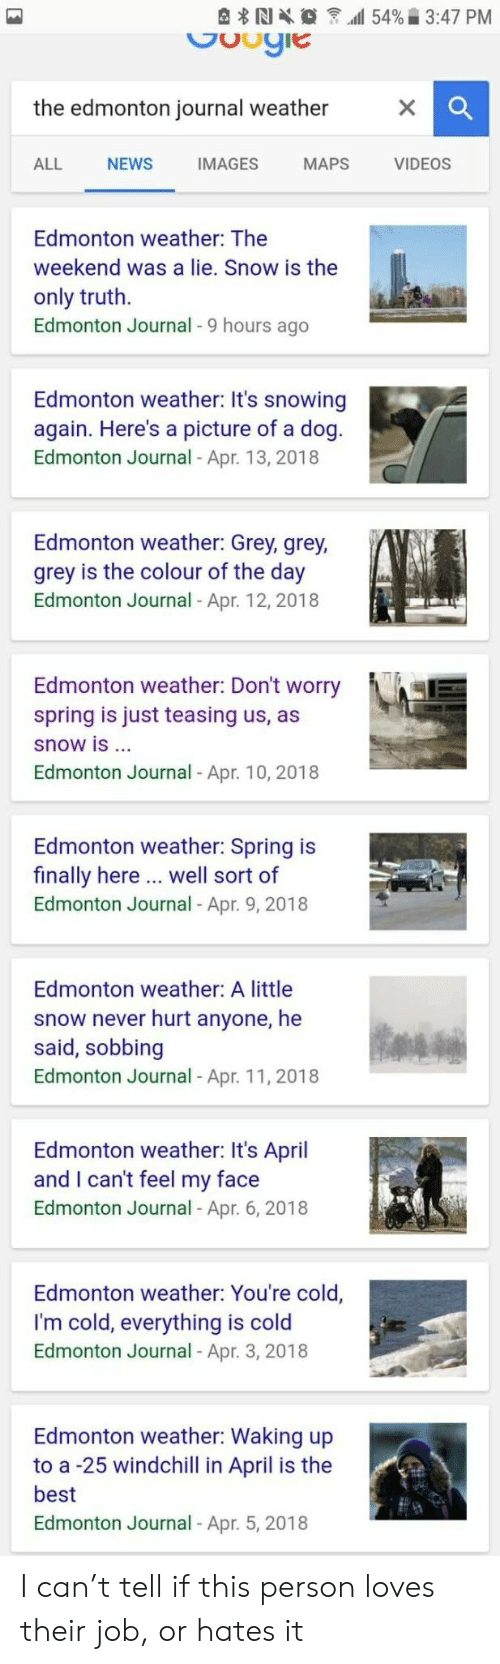 teasing: the edmonton journal weather  ALL NEWS IMAGES MAPS VIDEOS  Edmonton weather: The  weekend was a lie. Snow is the  only truth.  Edmonton Journal - 9 hours ago  Edmonton weather: It's snowing  again. Here's a picture of a dog  Edmonton Journal - Apr. 13, 2018  Edmonton weather: Grey, grey,  grey is the colour of the day  Edmonton Journal- Apr. 12,2018  Edmonton weather: Don't worry  spring is just teasing us, as  snow is ..  Edmonton Journal - Apr. 10, 2018  Edmonton weather: Spring is  finally here .. well sort of  Edmonton Journal - Apr. 9, 2018  Edmonton weather: A little  snow never hurt anyone, he  said, sobbing  Edmonton Journal - Apr. 11, 2018  Edmonton weather: It's April  and I can't feel my face  Edmonton Journal Apr. 6, 2018  Edmonton weather: You're cold,  I'm cold, everything is cold  Edmonton Journal Apr. 3, 2018  Edmonton weather: Waking up  to a -25 windchill in April is the  best  Edmonton Journal - Apr. 5, 2018 I can't tell if this person loves their job, or hates it